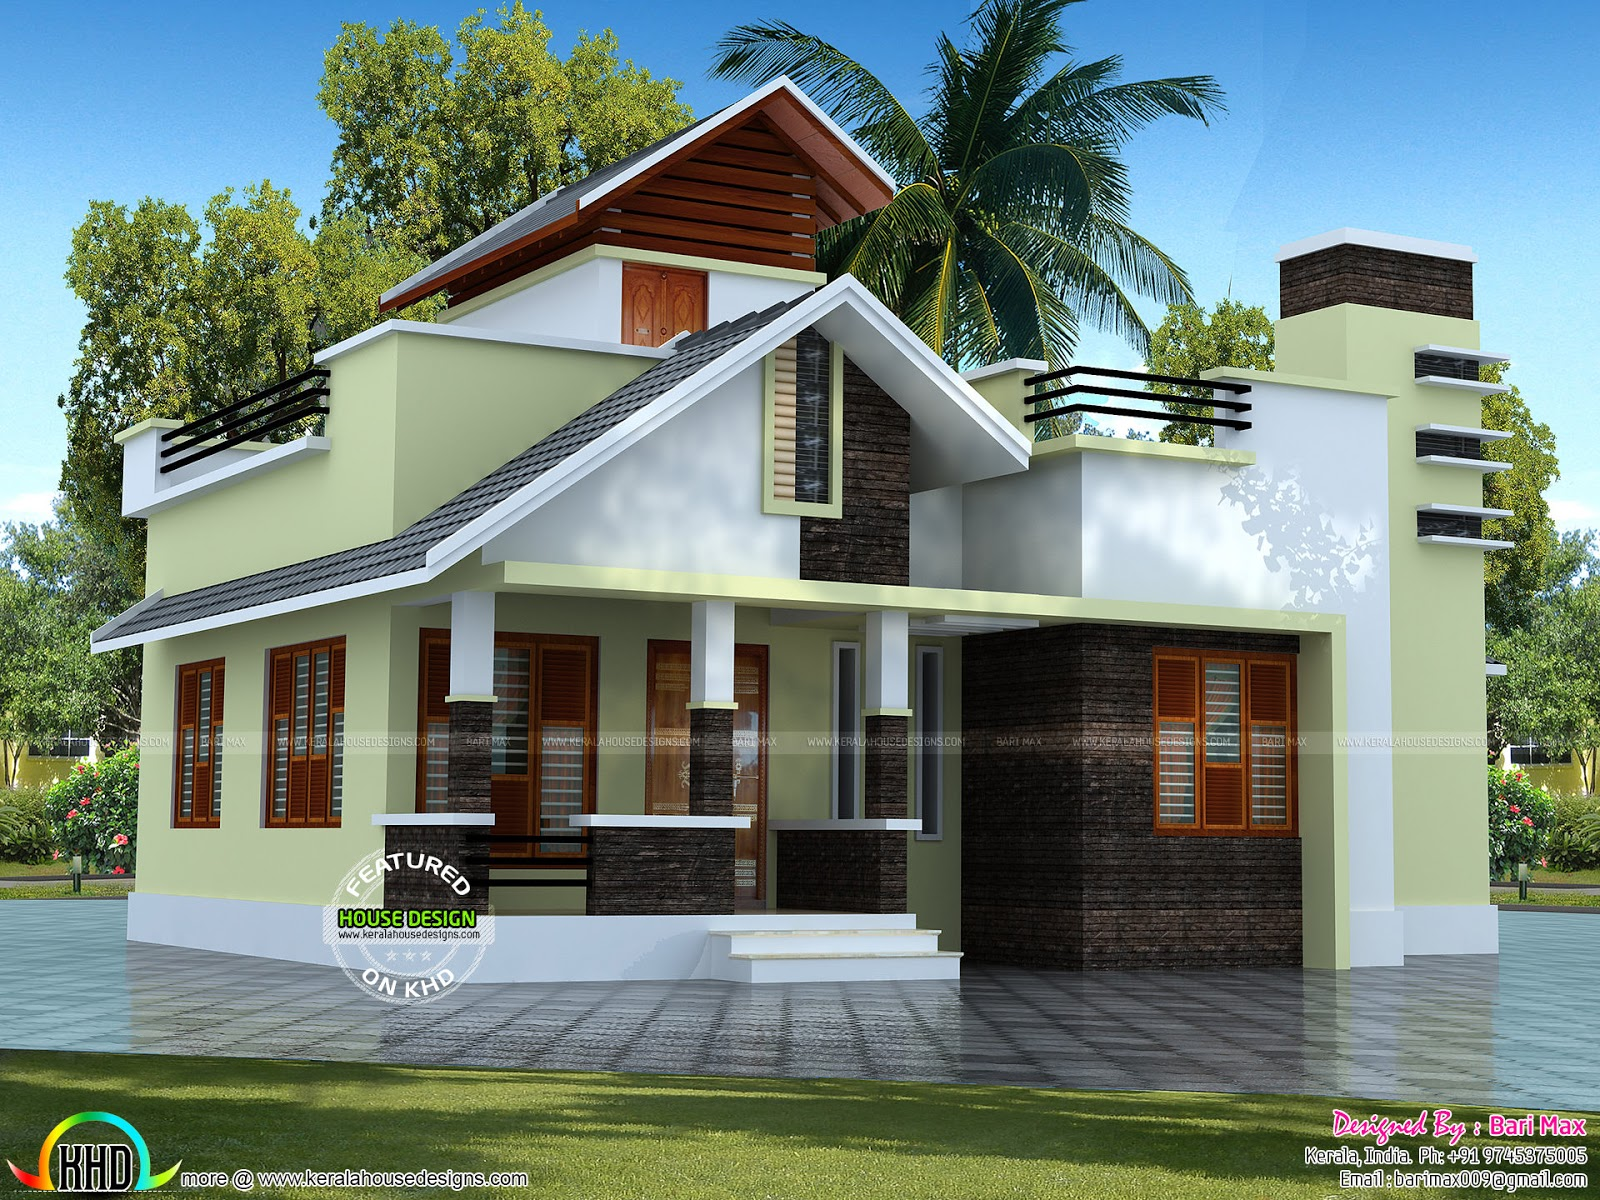 Gandul low cost single floor home 1050 sq ft Low cost modern homes